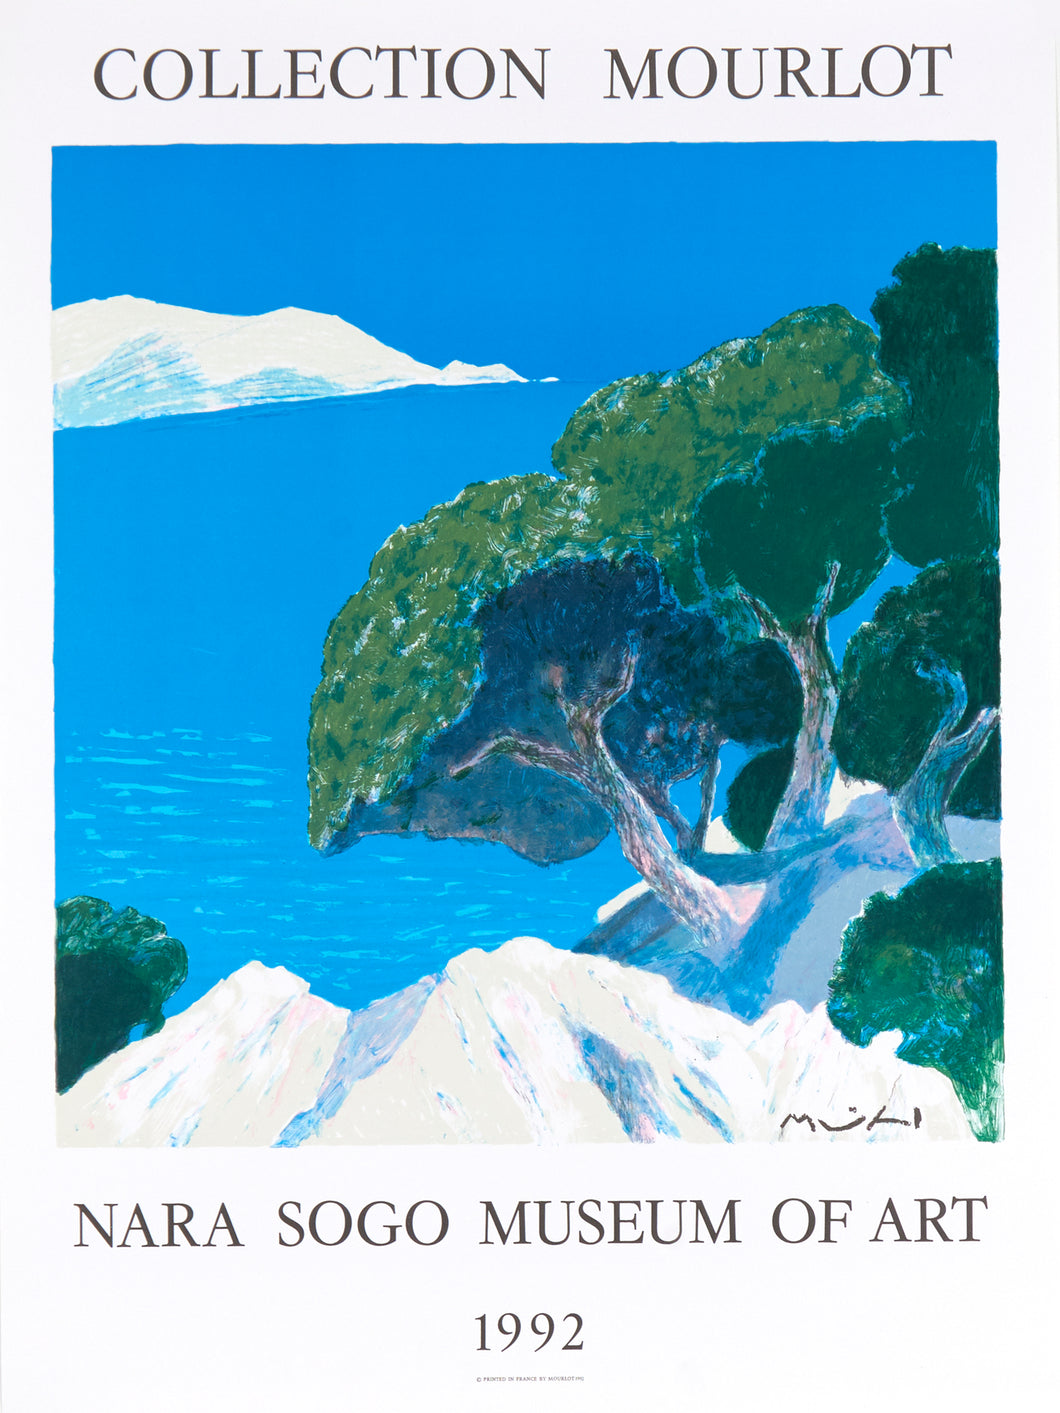 Collection Mourlot, Nara Sogo Museum of Art by Roger Mühl 1992